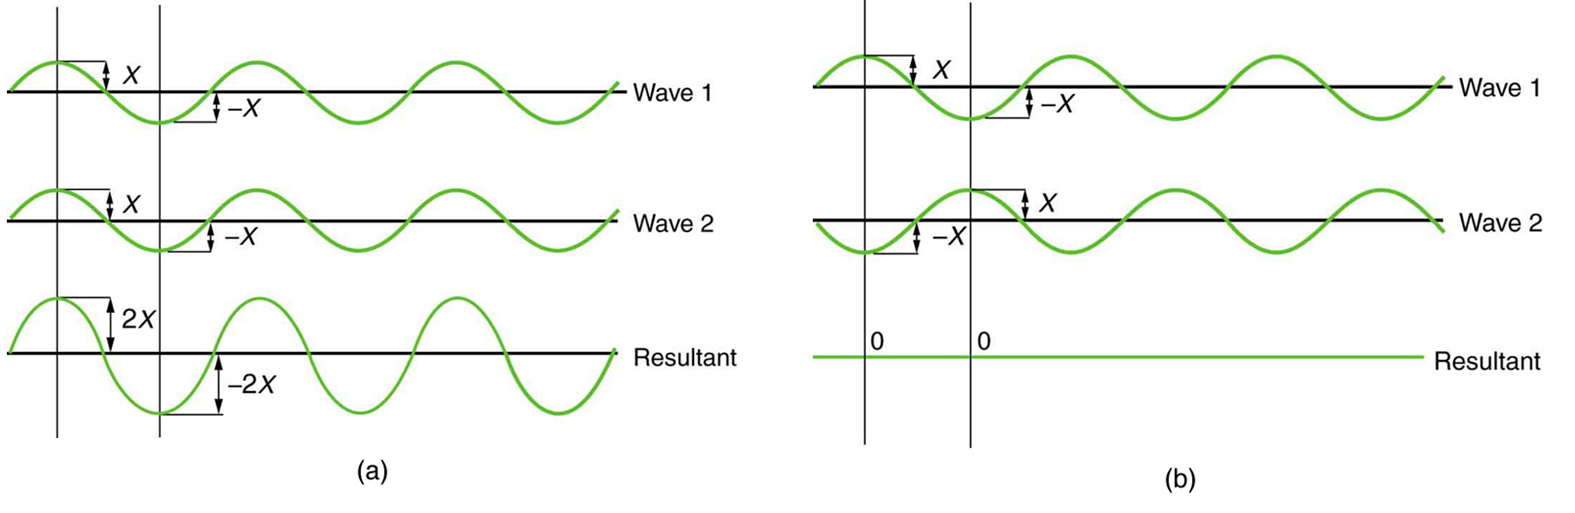 hight resolution of figure a shows three sine waves with the same wavelength arranged one above the other